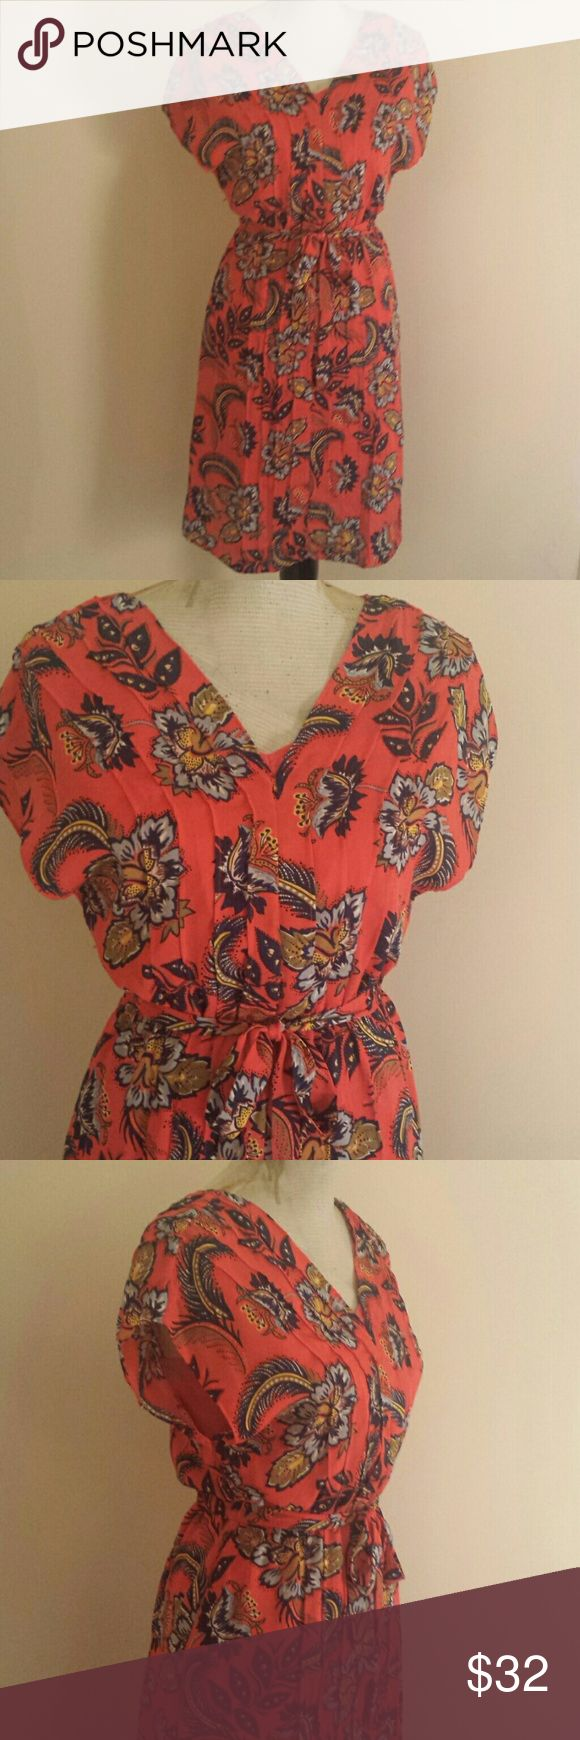 Lands End Orange Light Floral Pleated  Midi Dress This Lands End orange floral print dress is perfect for just about any occasion. This dress is made from 100% polyester making it light and breezy. There is a matching orange slip attached. This dress is in mint condition. Lands' End Dresses Midi